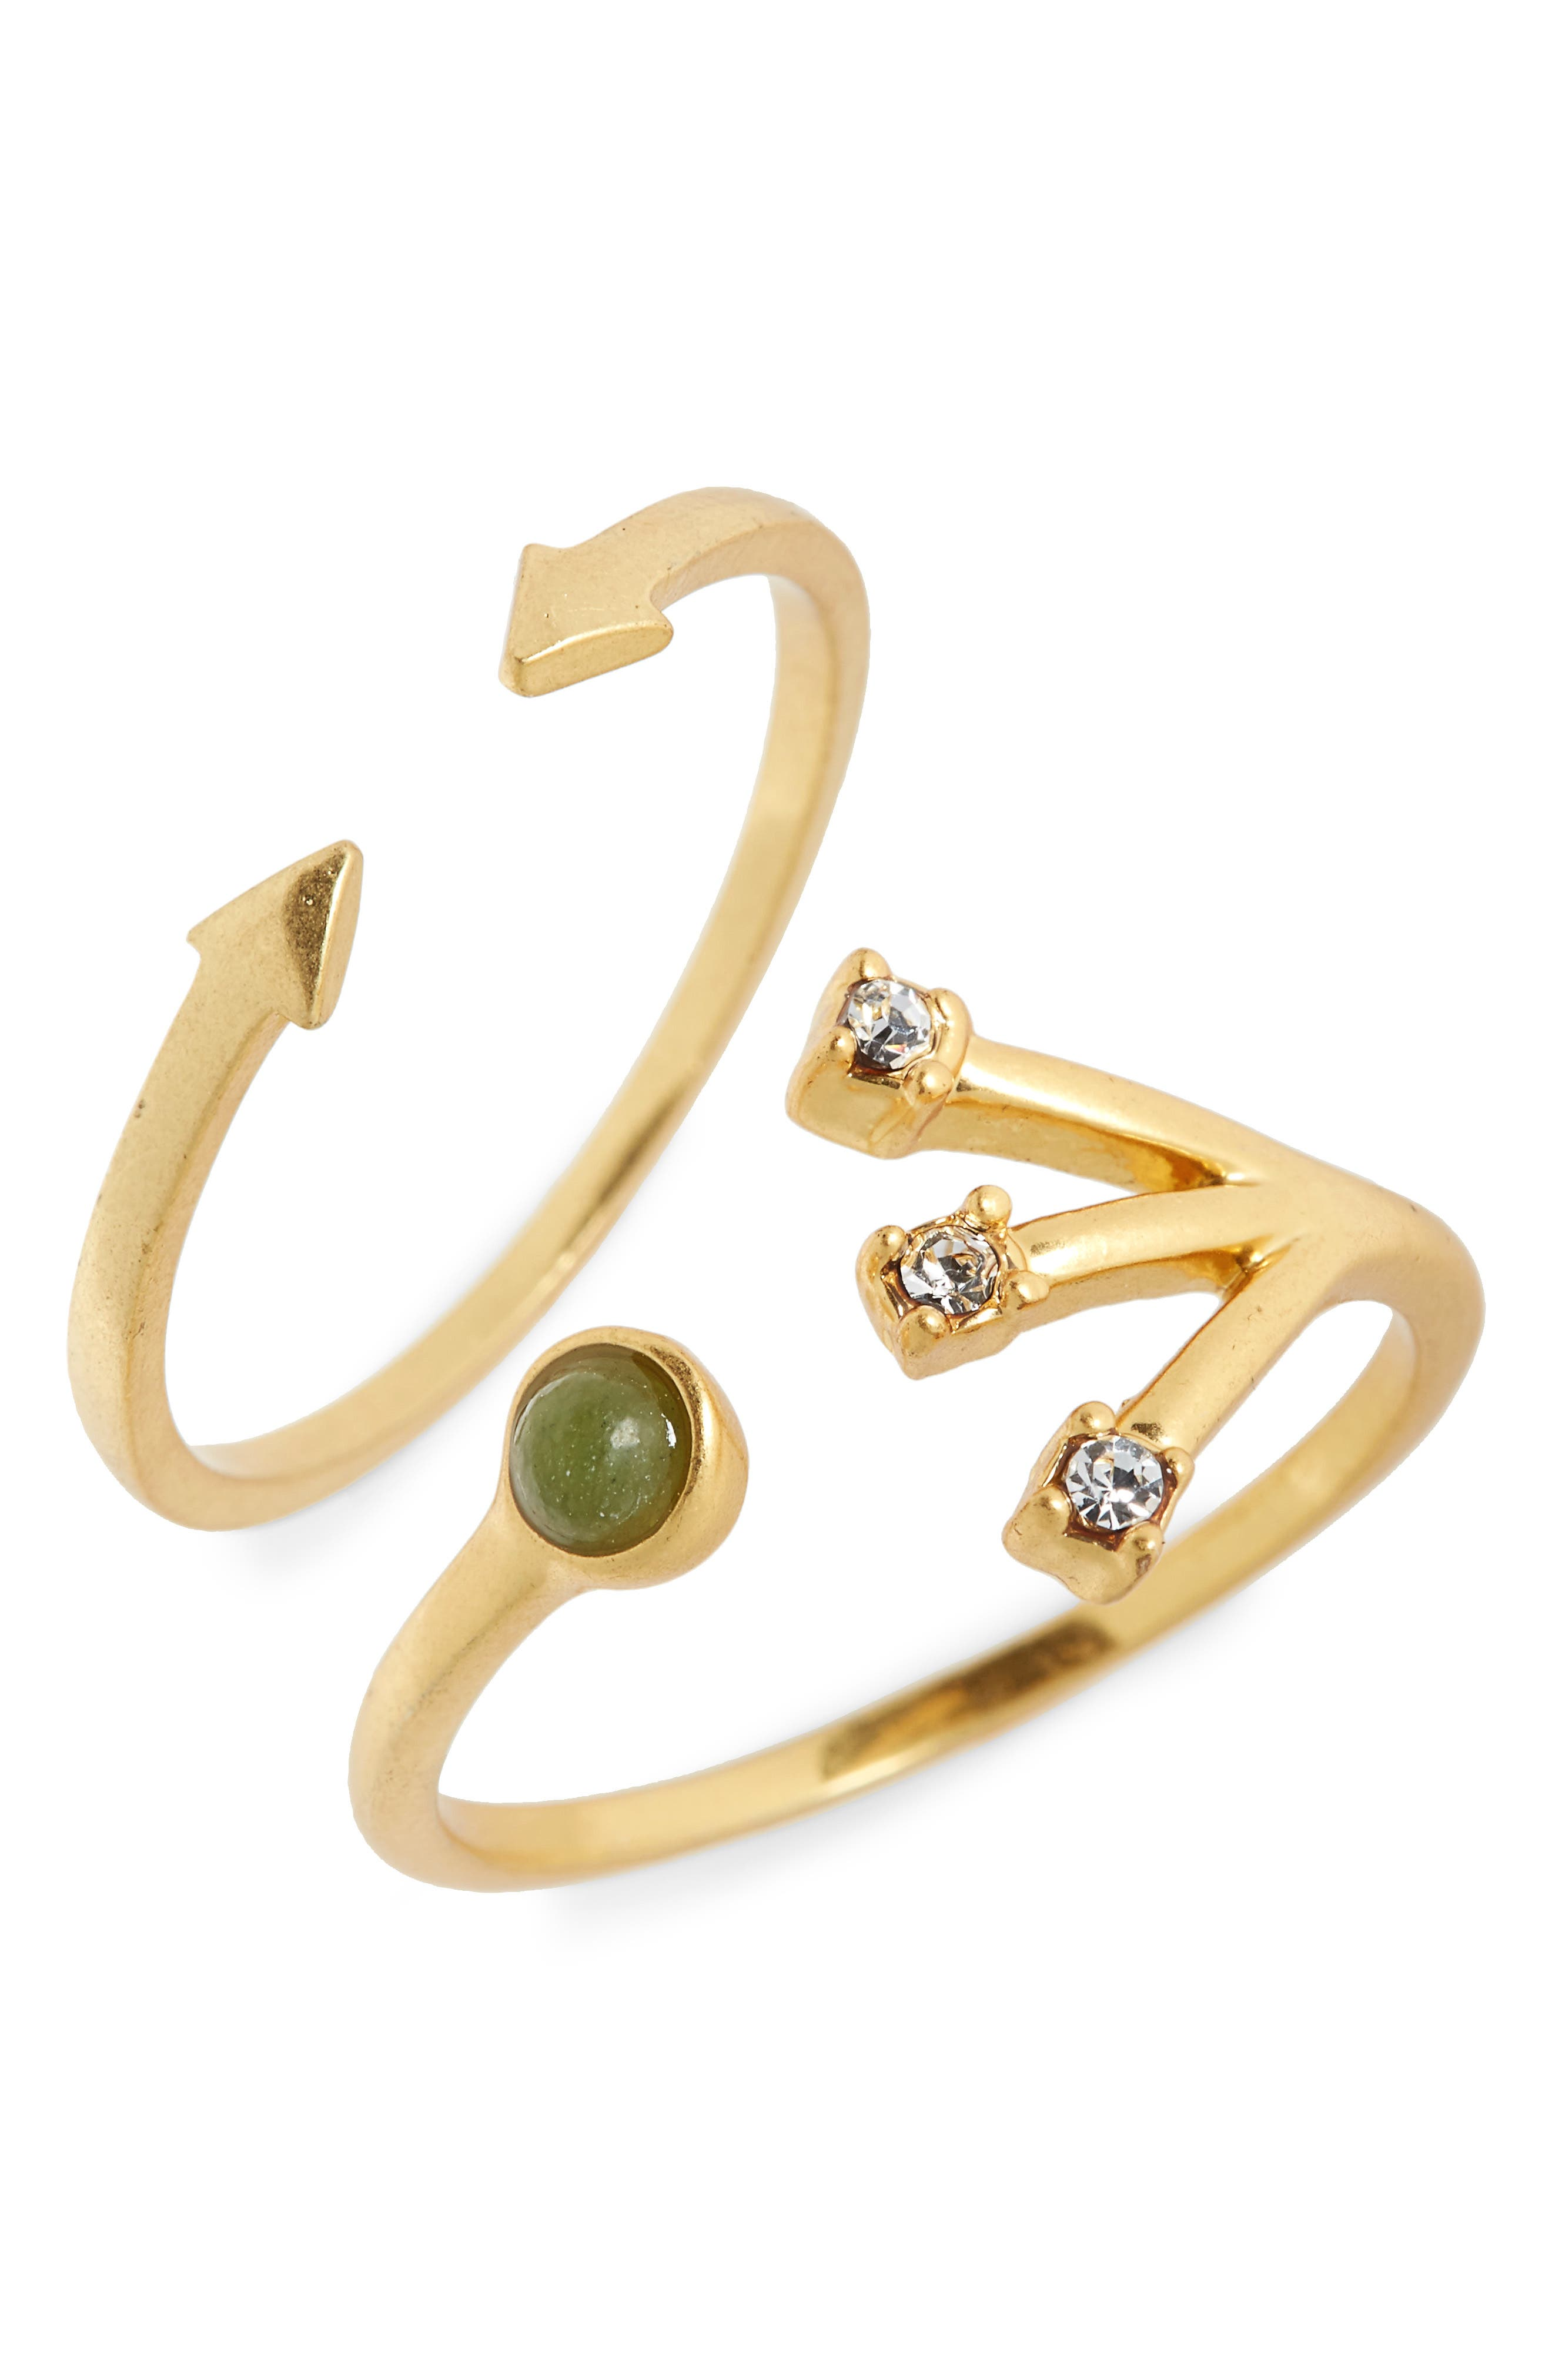 Alternate Image 1 Selected - Madewell Tiny Jewels Set of 2 Stacking Rings